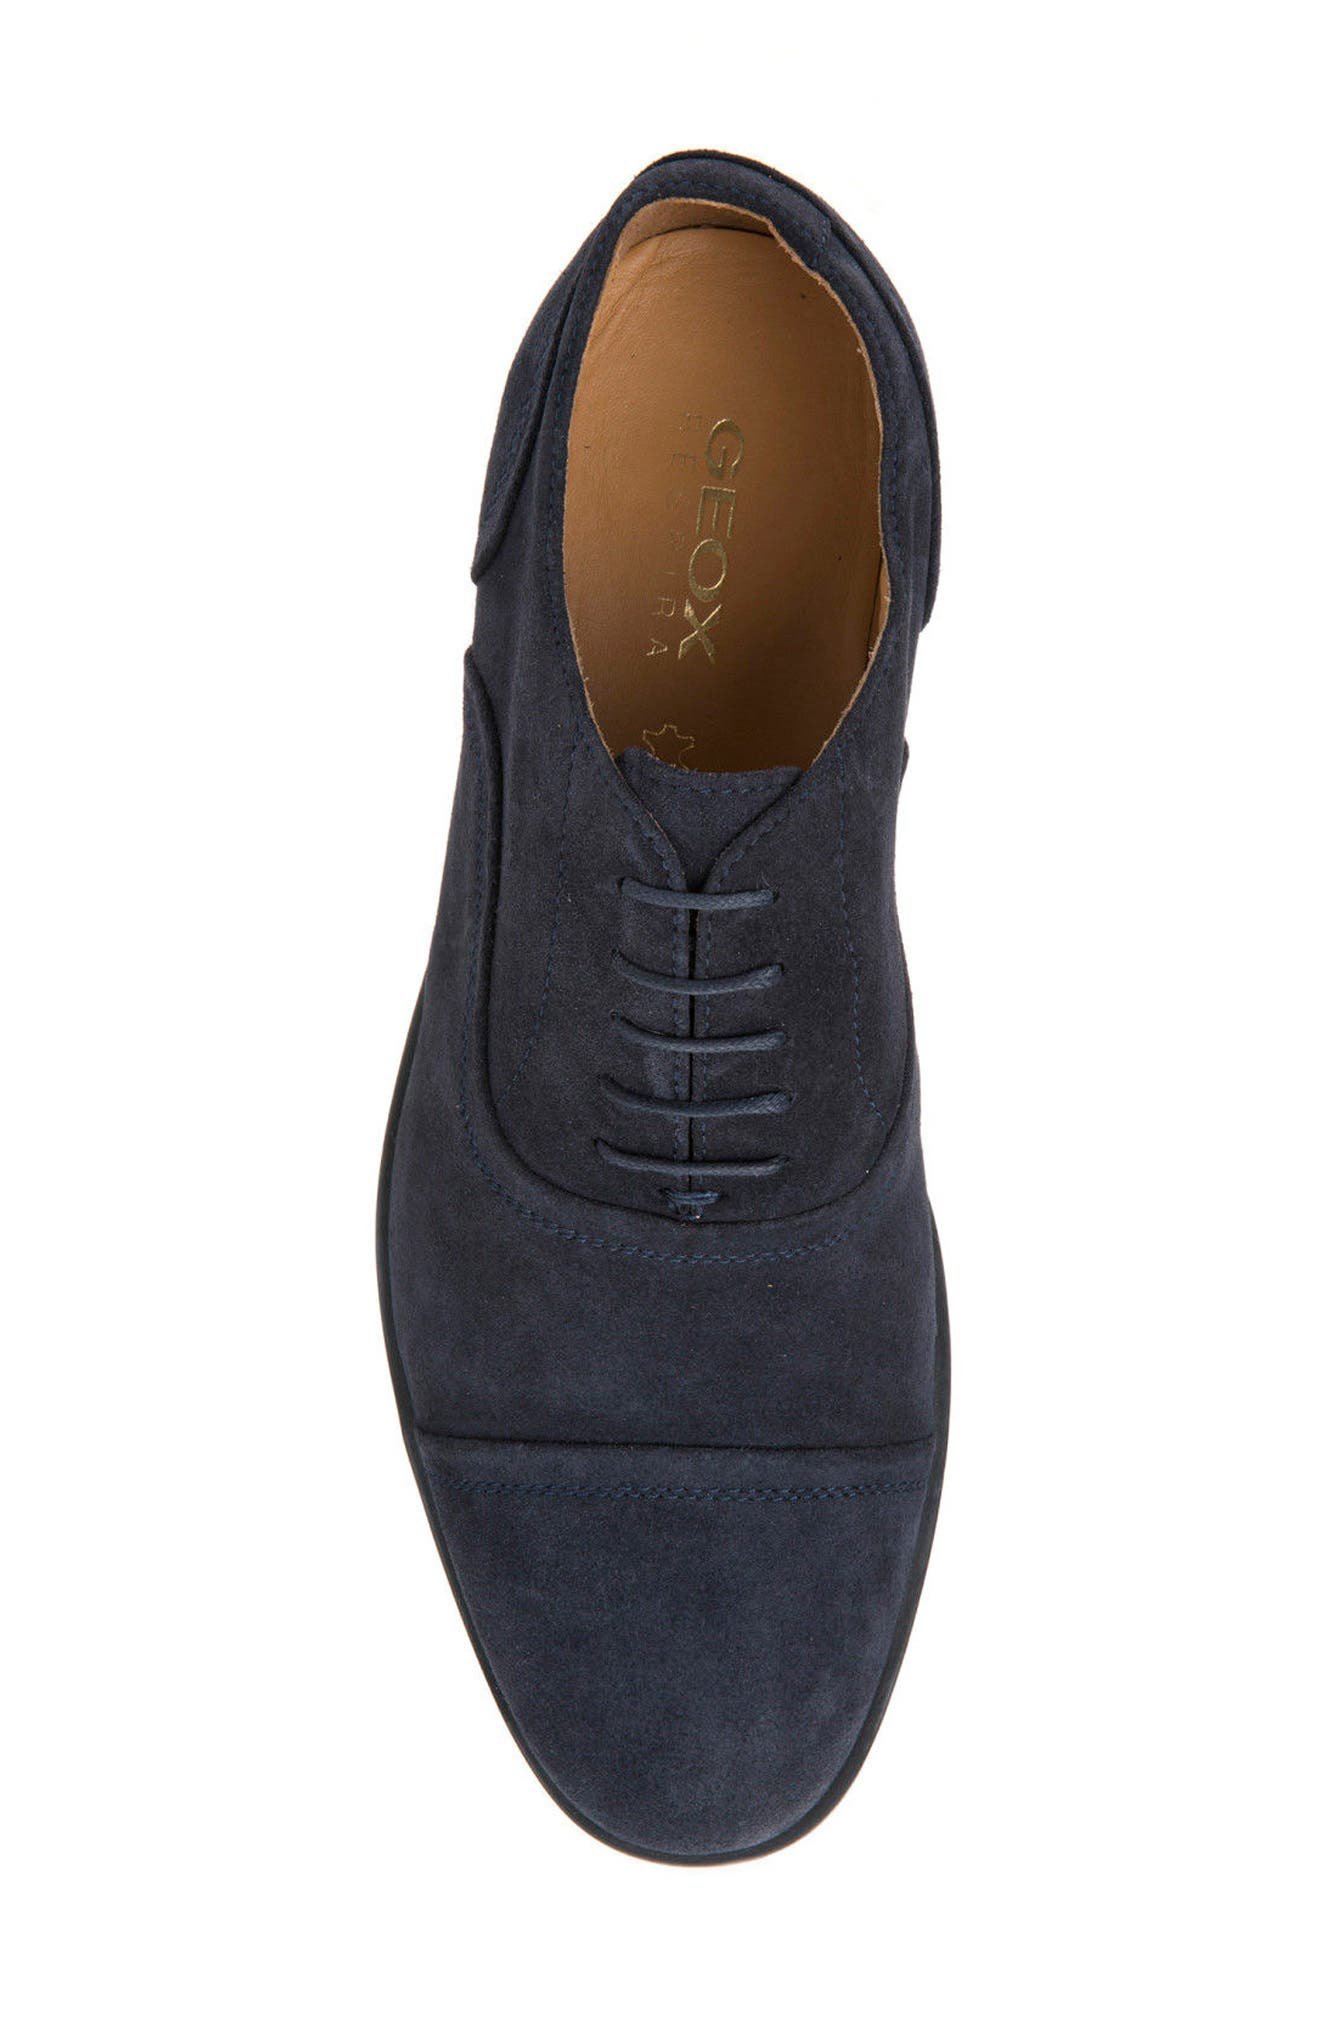 Bryceton 2 Cap Toe Oxford,                             Alternate thumbnail 5, color,                             Navy Suede